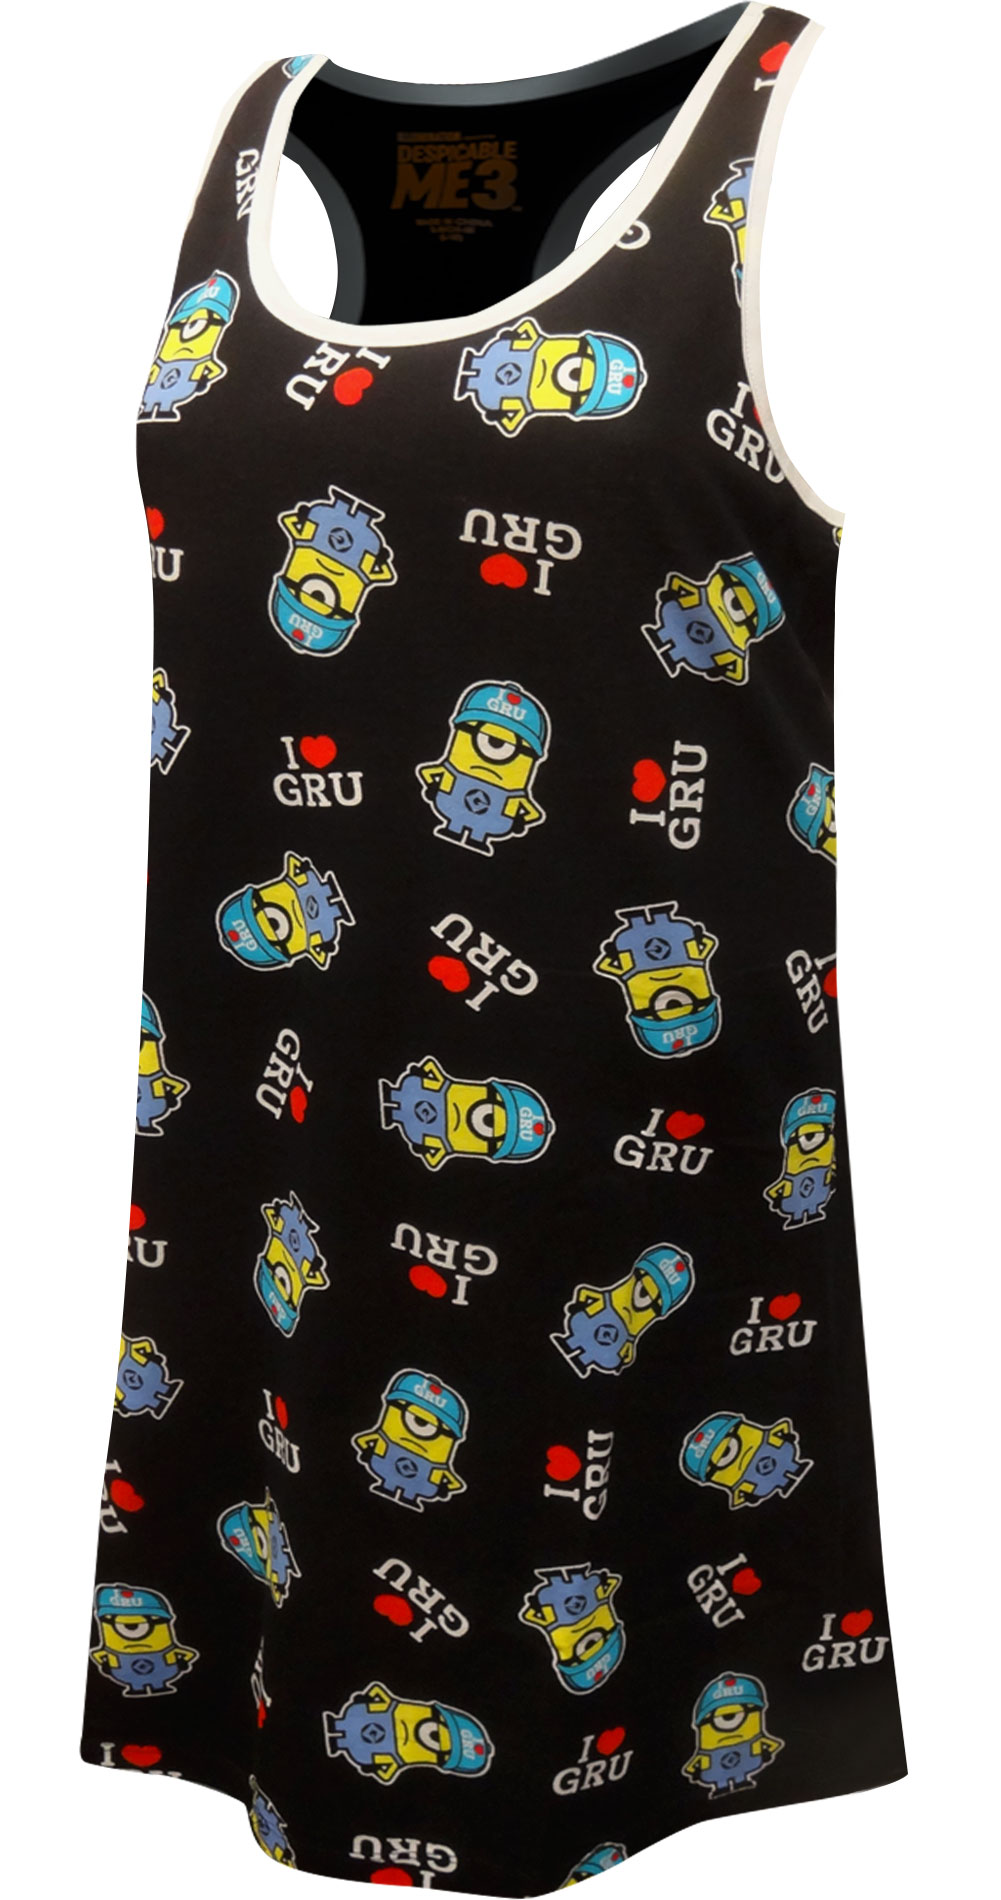 Image of Despicable Me 3 Minions I Love Gru Tank Style Nightgown for women